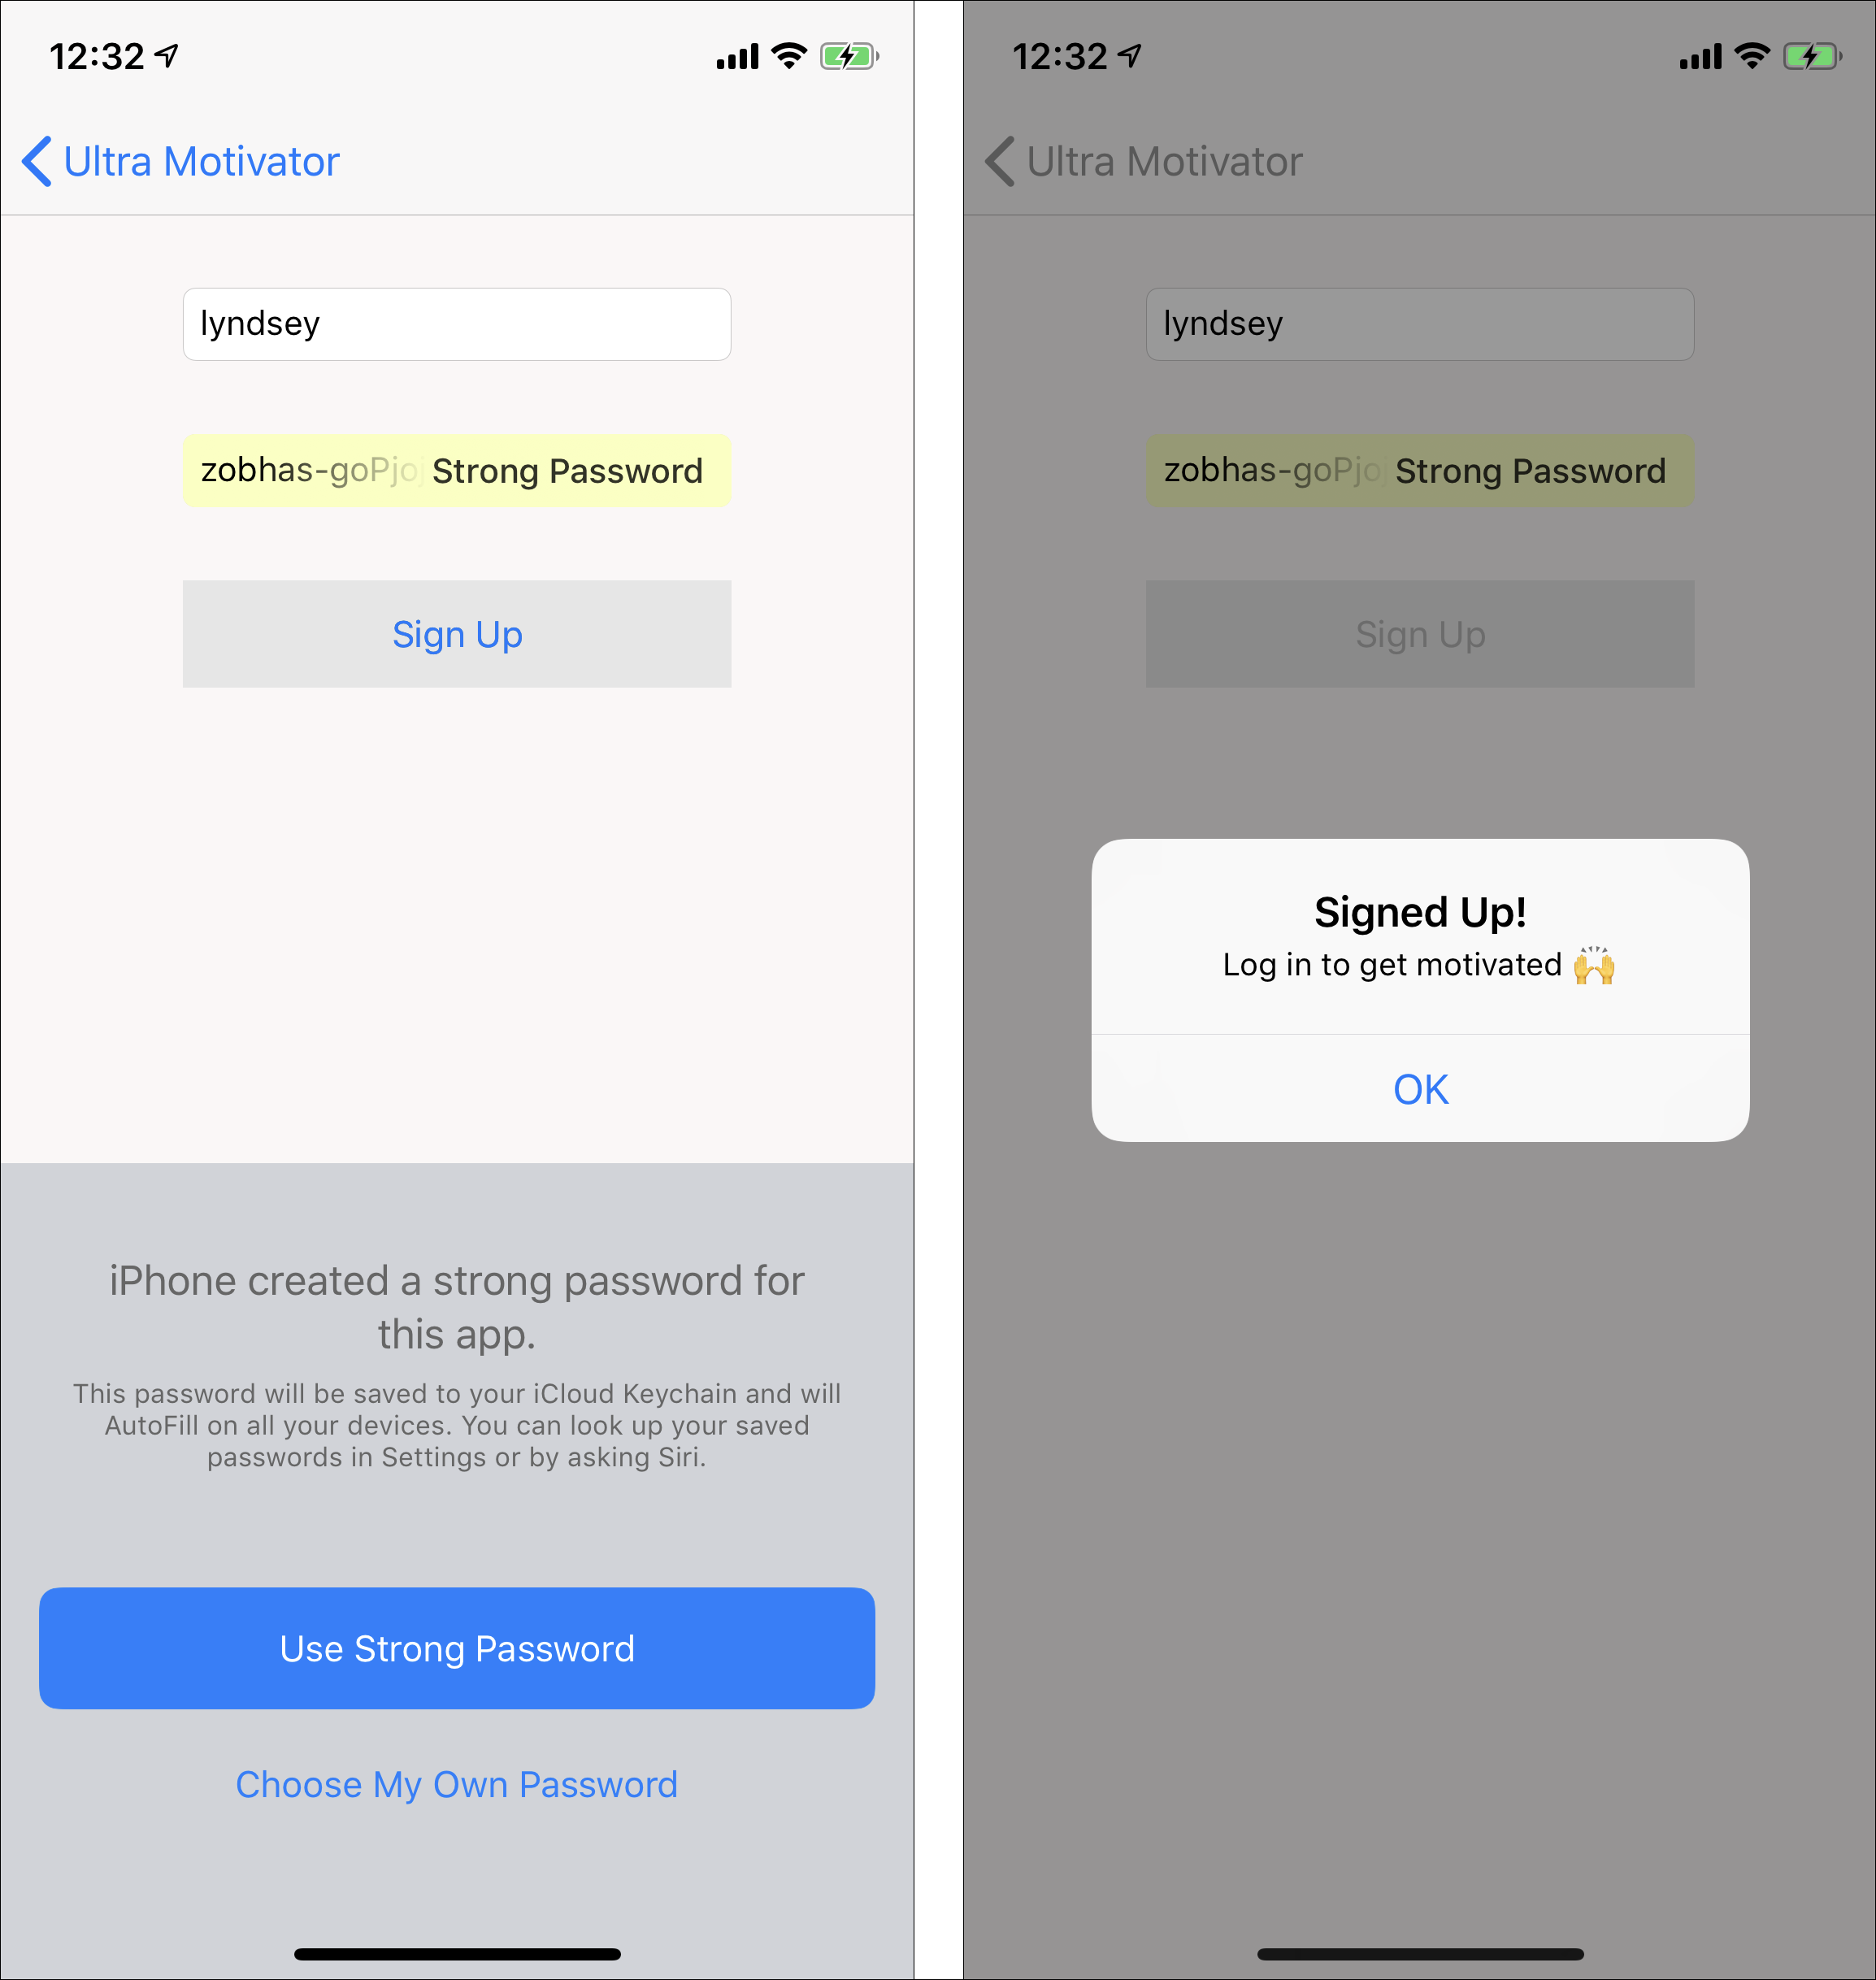 iOS 12 Password Tools: Improving User Security and